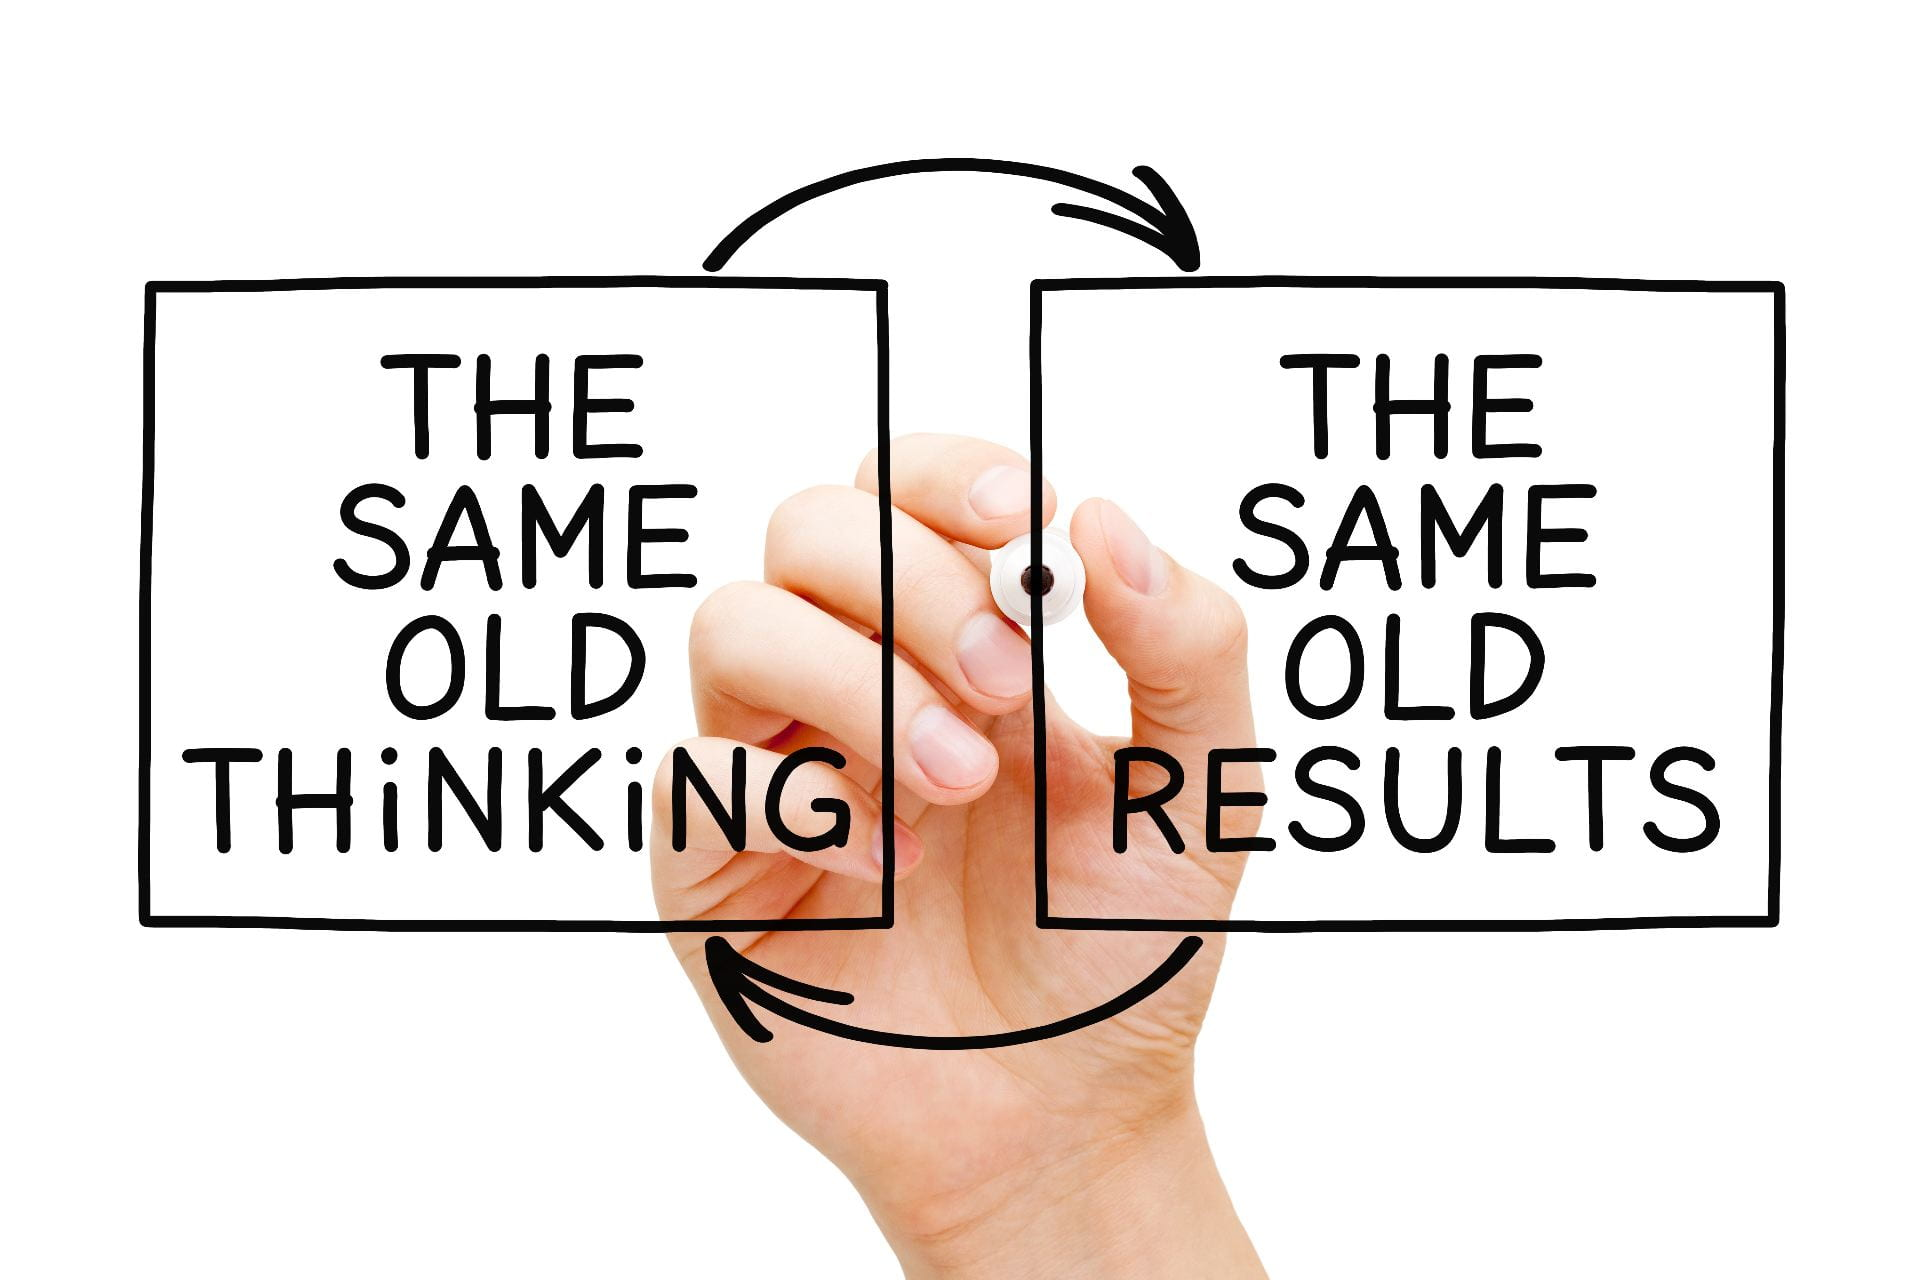 The Same Old Thinking leads to The Same Old Results